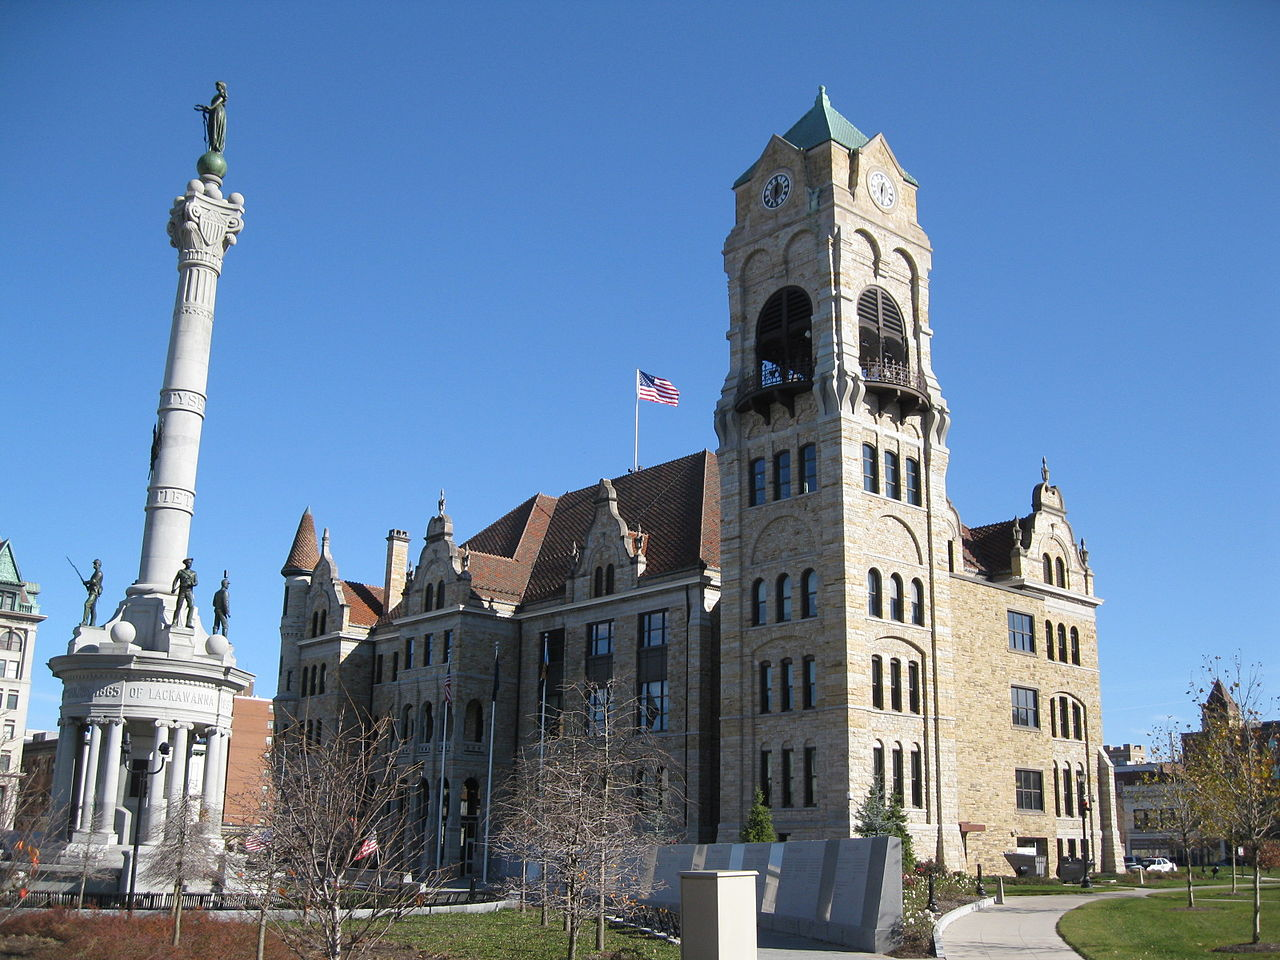 The Lackawanna County Courthouse was built in 1884 and is famous for the site of the first session of the Anthracite Coal Strike Commission, which was the federal's government's first attempt at solving a labor dispute.